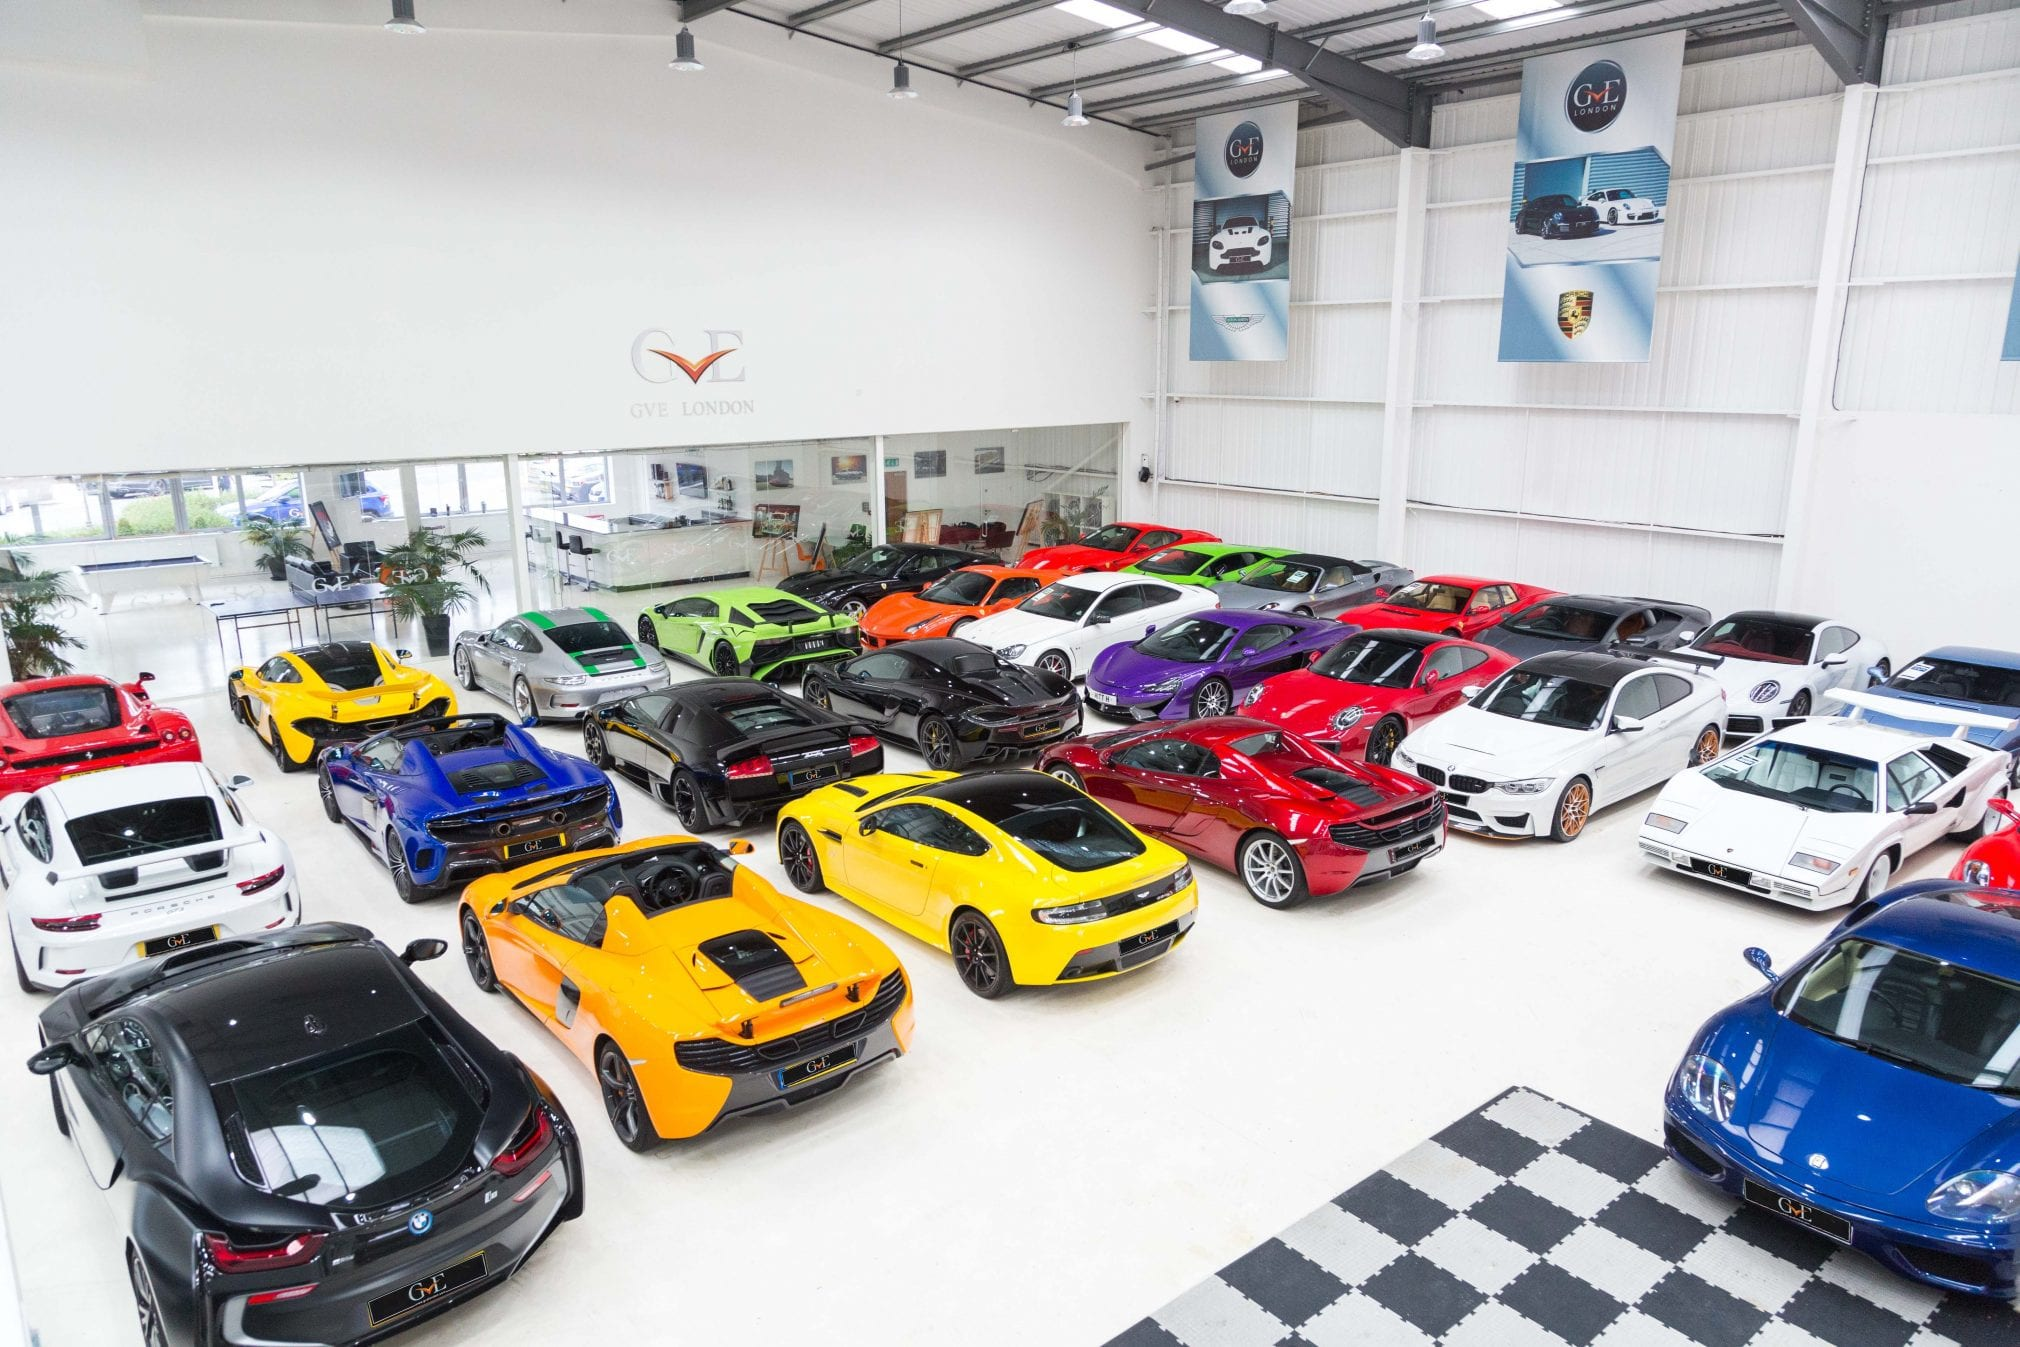 GVE London Supercar Storage | Store and Protect | West London